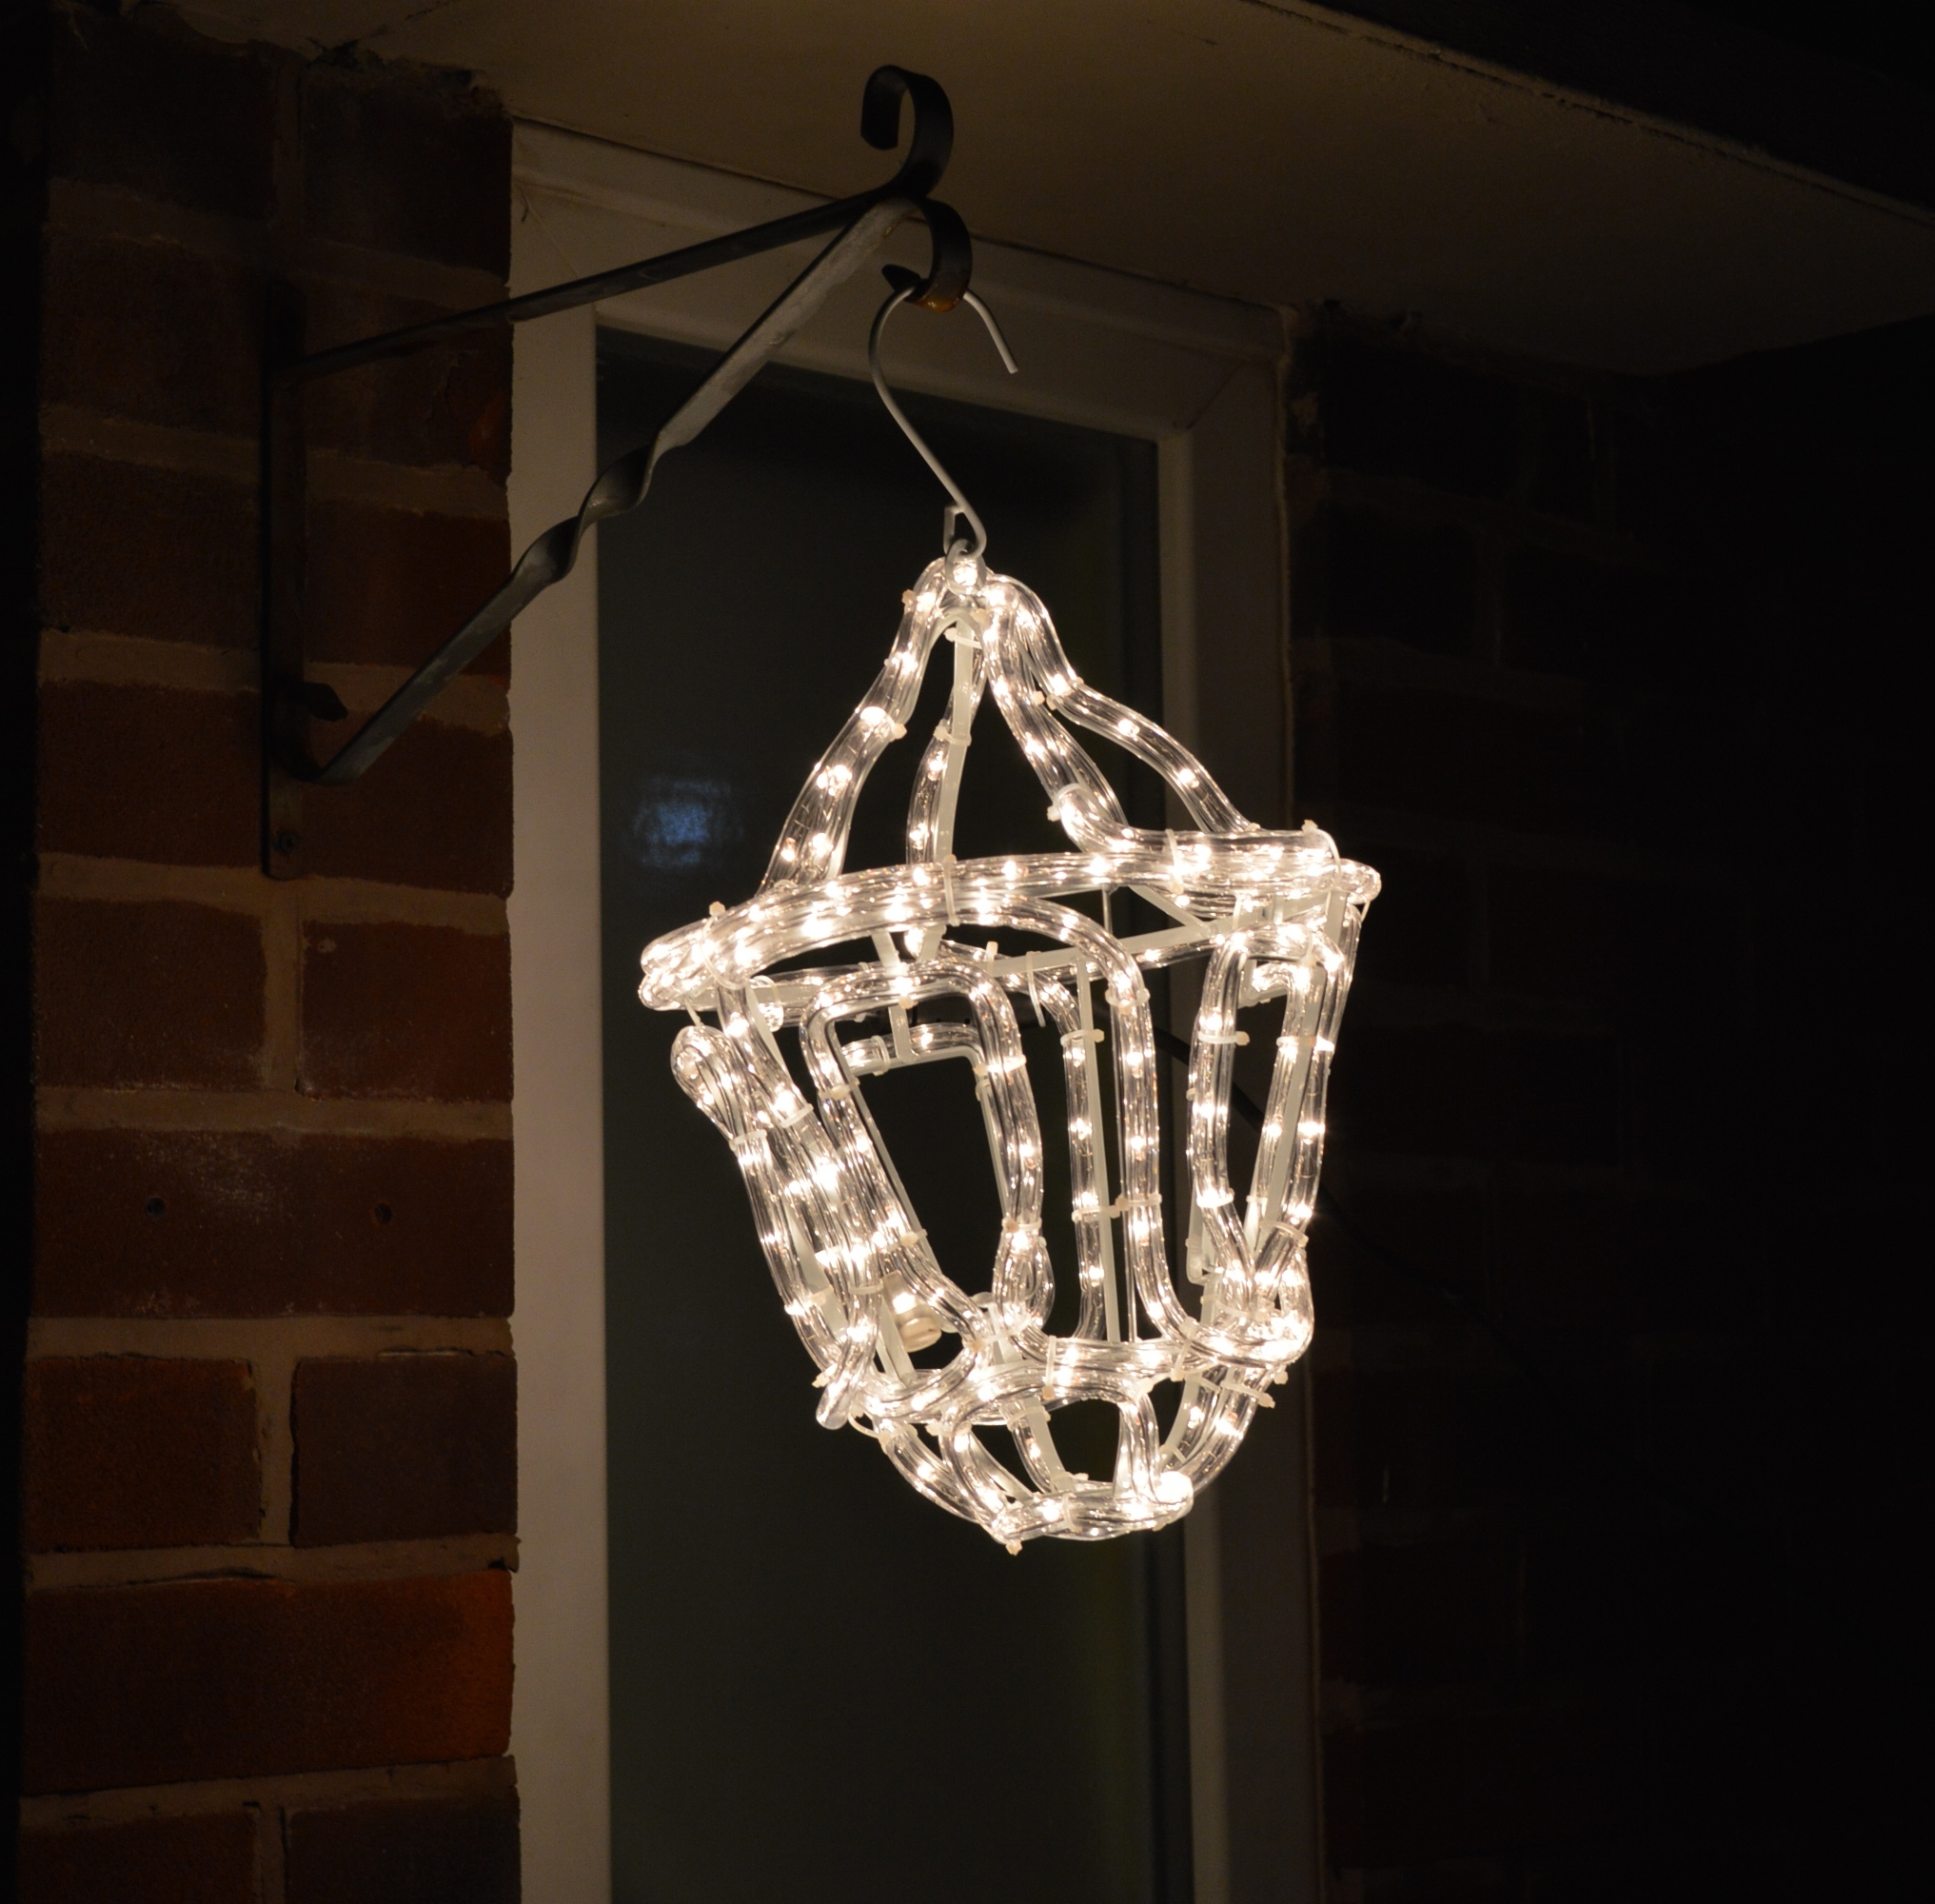 33Cm Premier Outdoor Led Lantern Rope Light Christmas Decoration In Intended For Most Recent Outdoor Christmas Rope Lanterns (View 15 of 20)